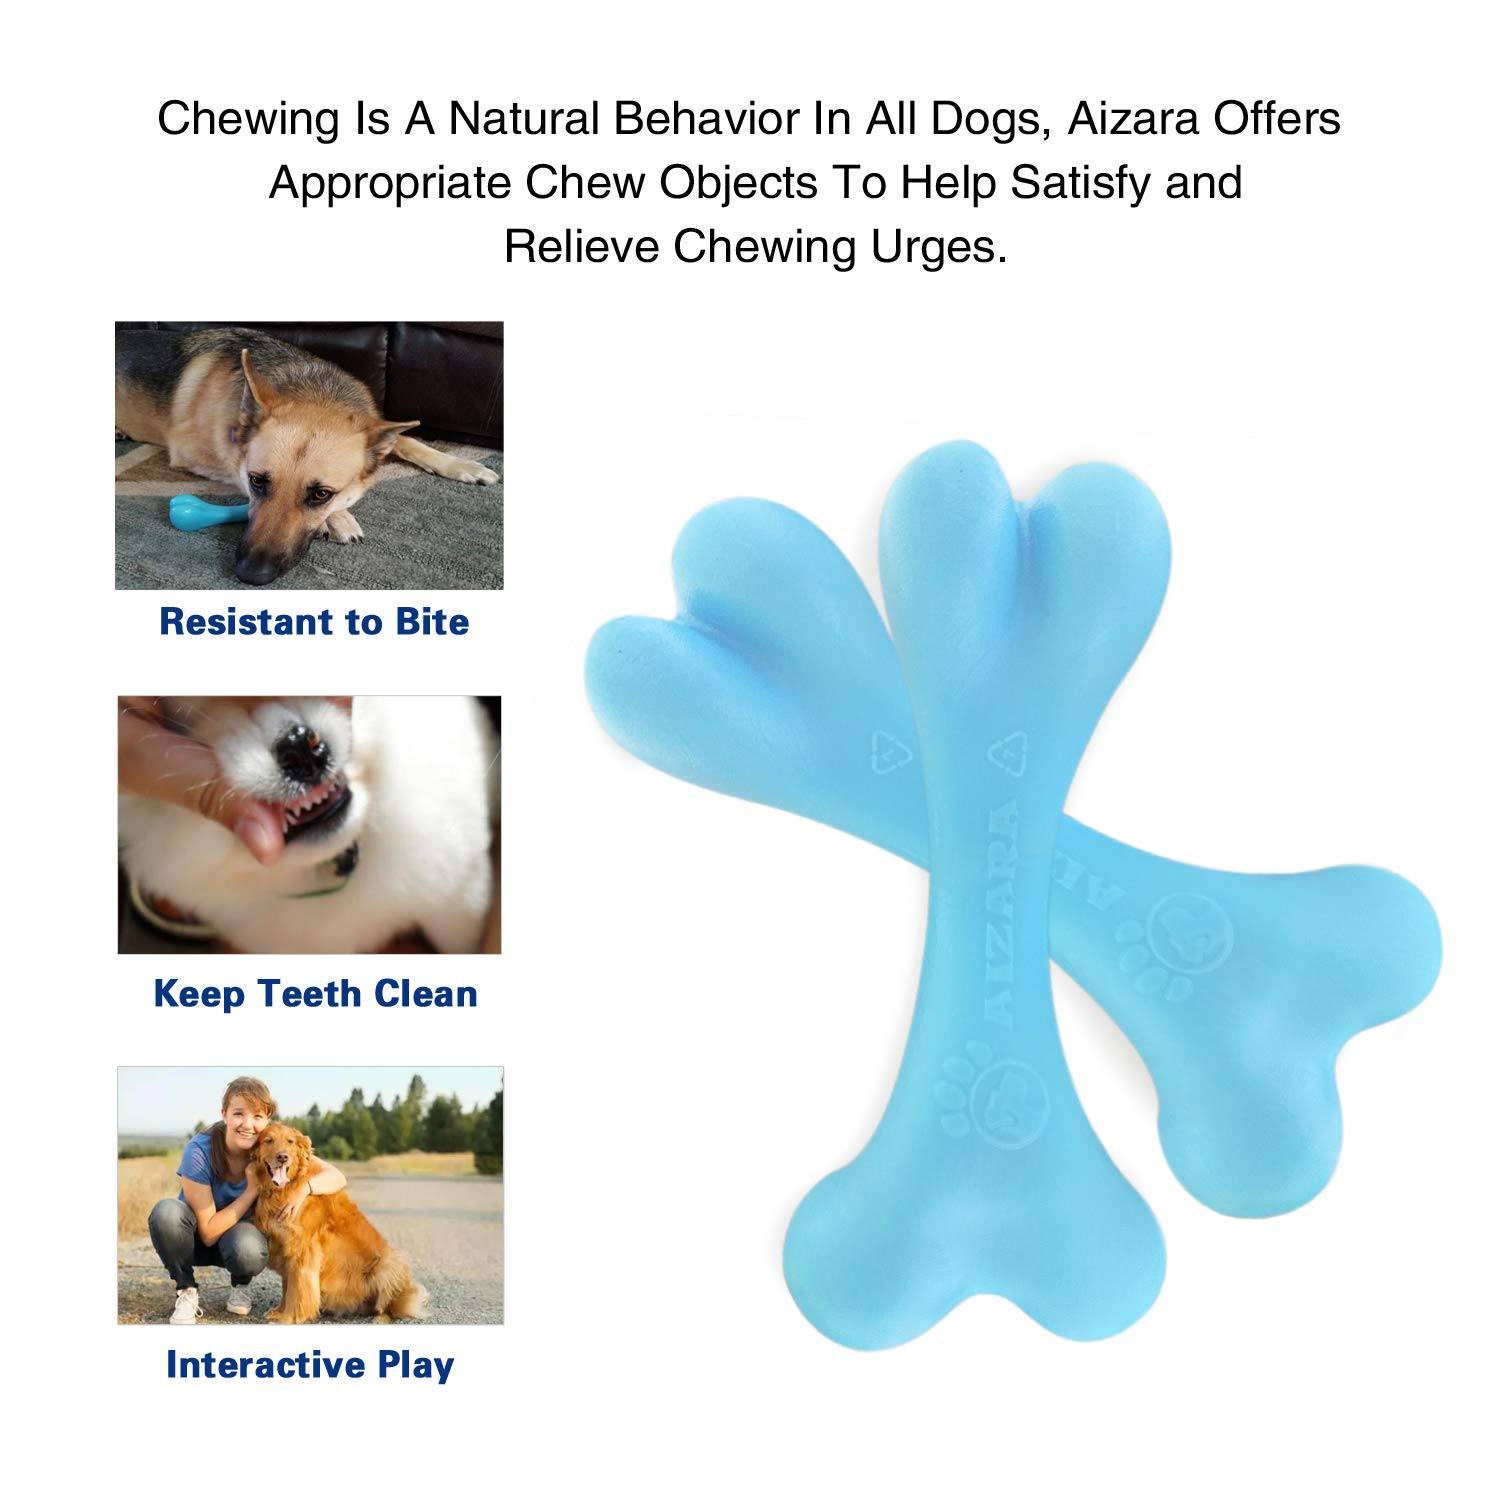 ucho Dog Chew Toys for Aggressive Chewers, Indestructible Dog Toys Tough Durable Nylon Bone Chew Toy for Large Dogs